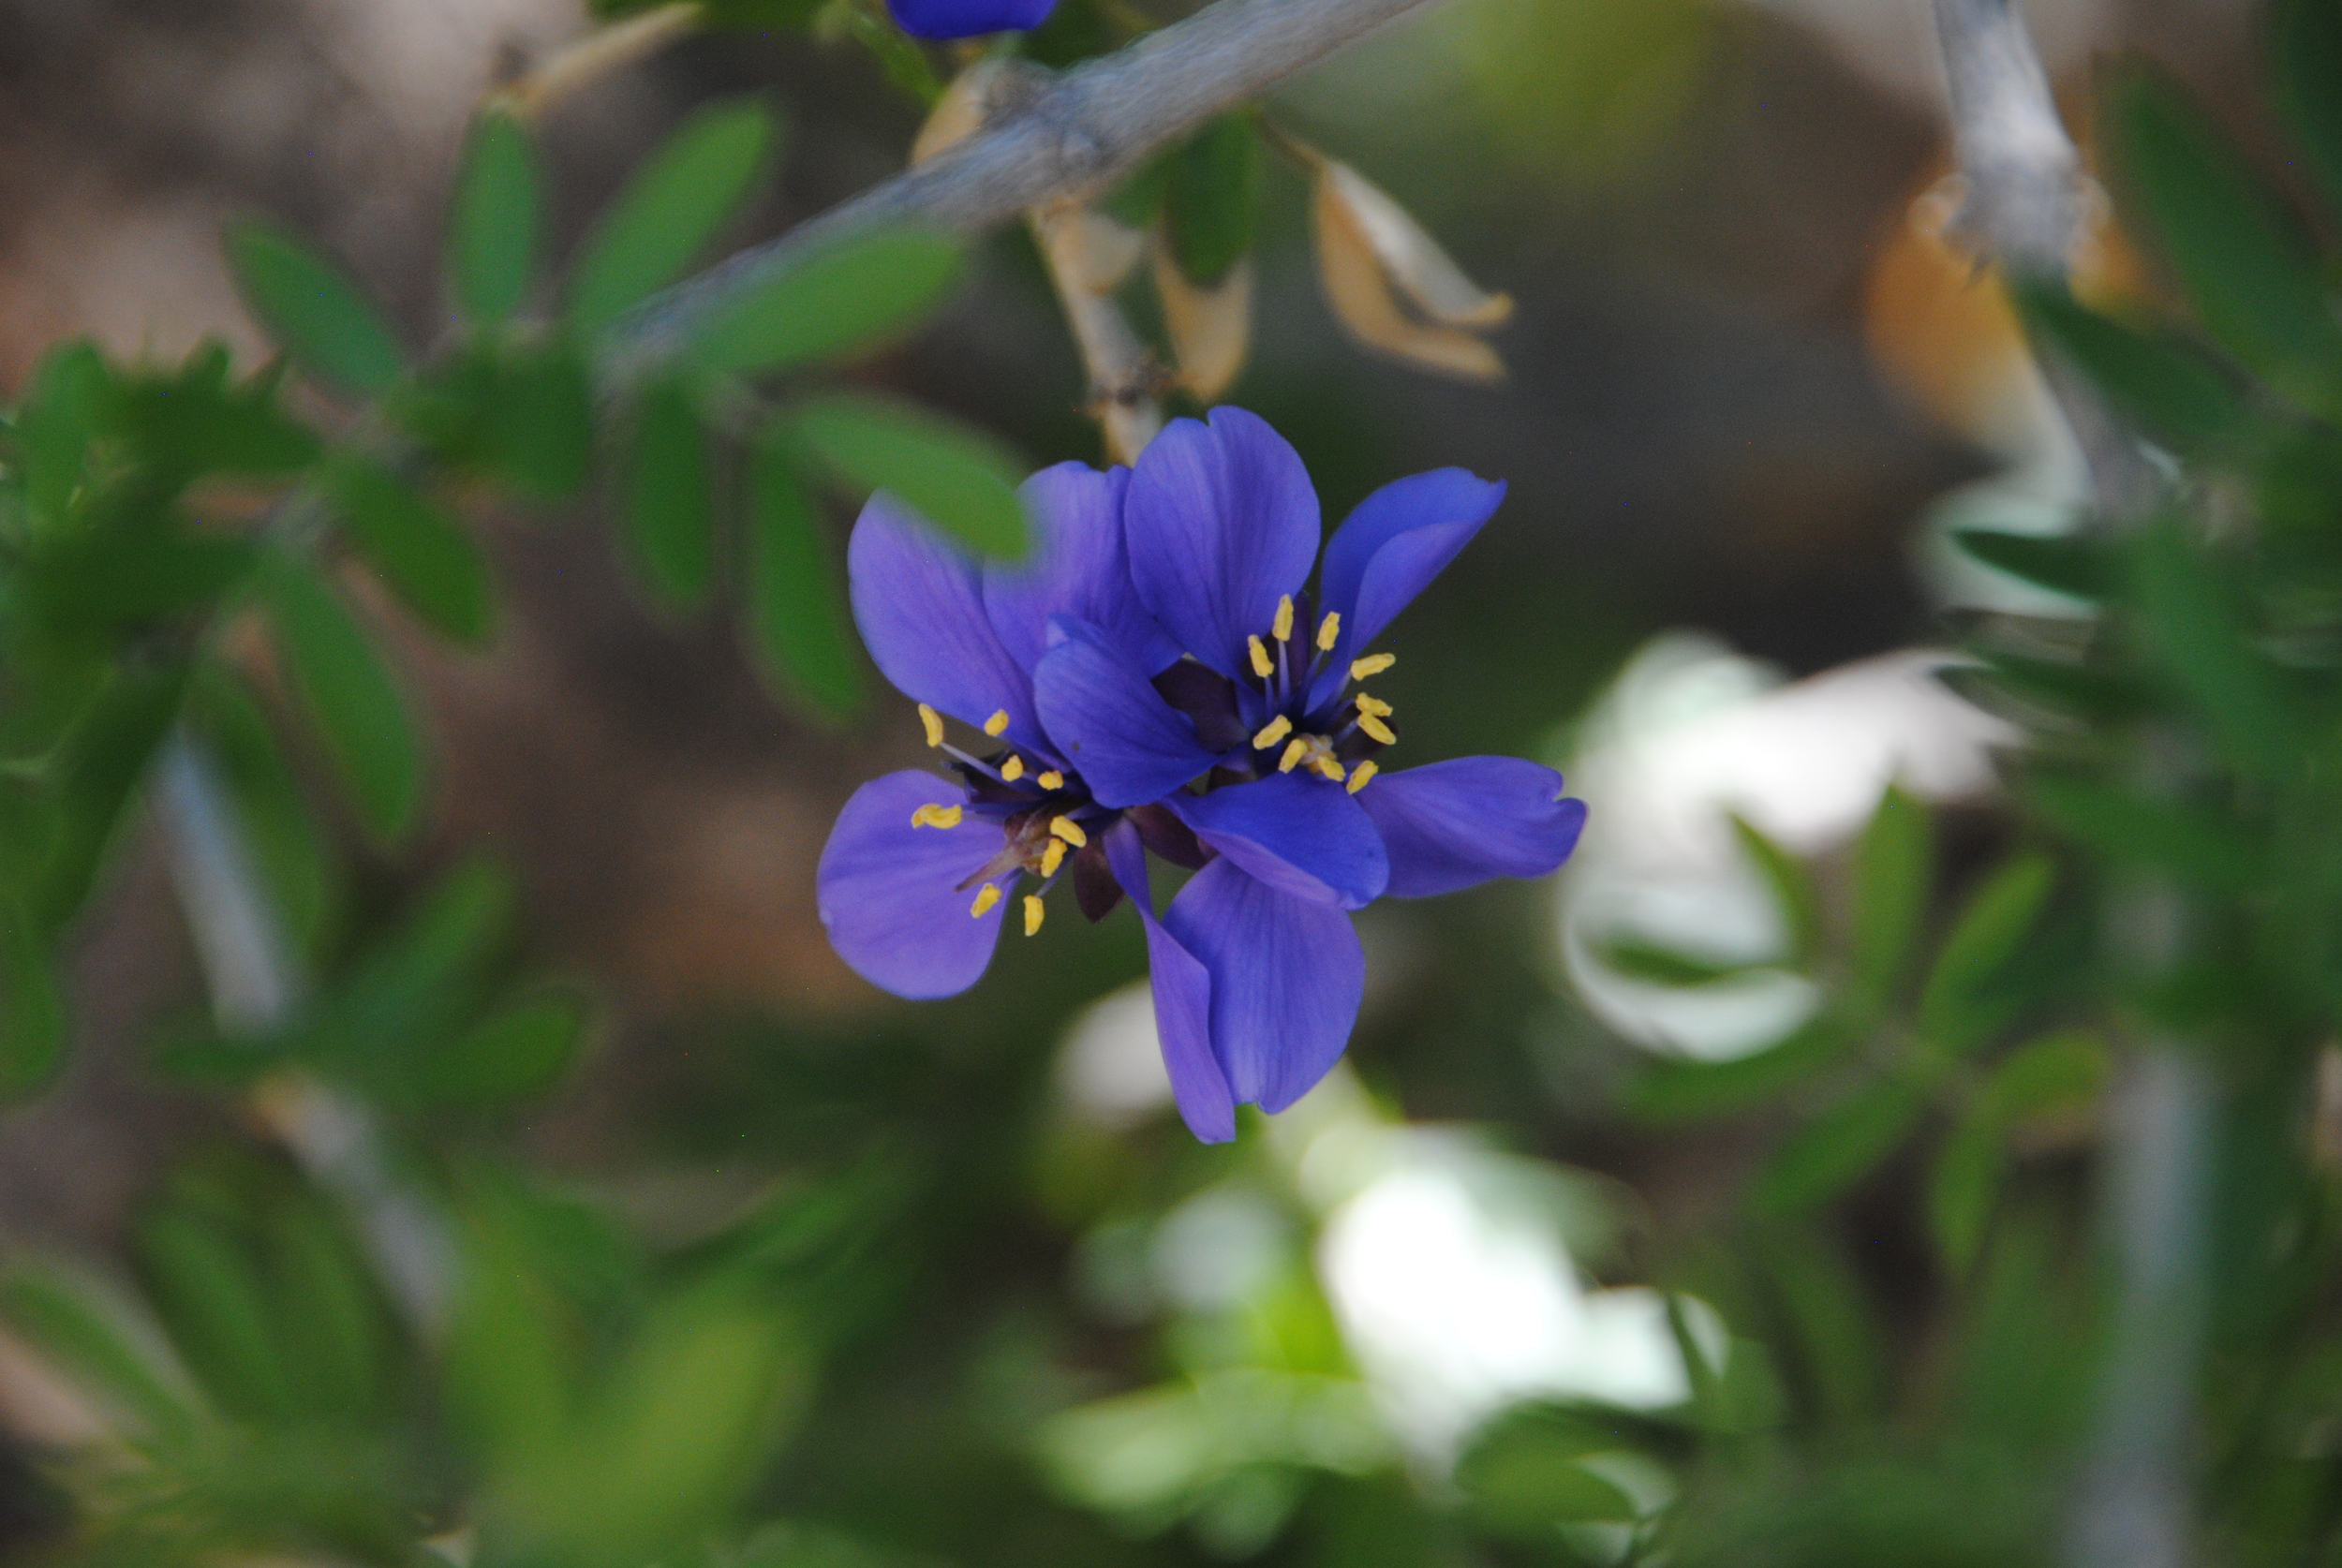 The beautiful blue flowers of the Guaiacum coulteri from Mexico and Guatemala.